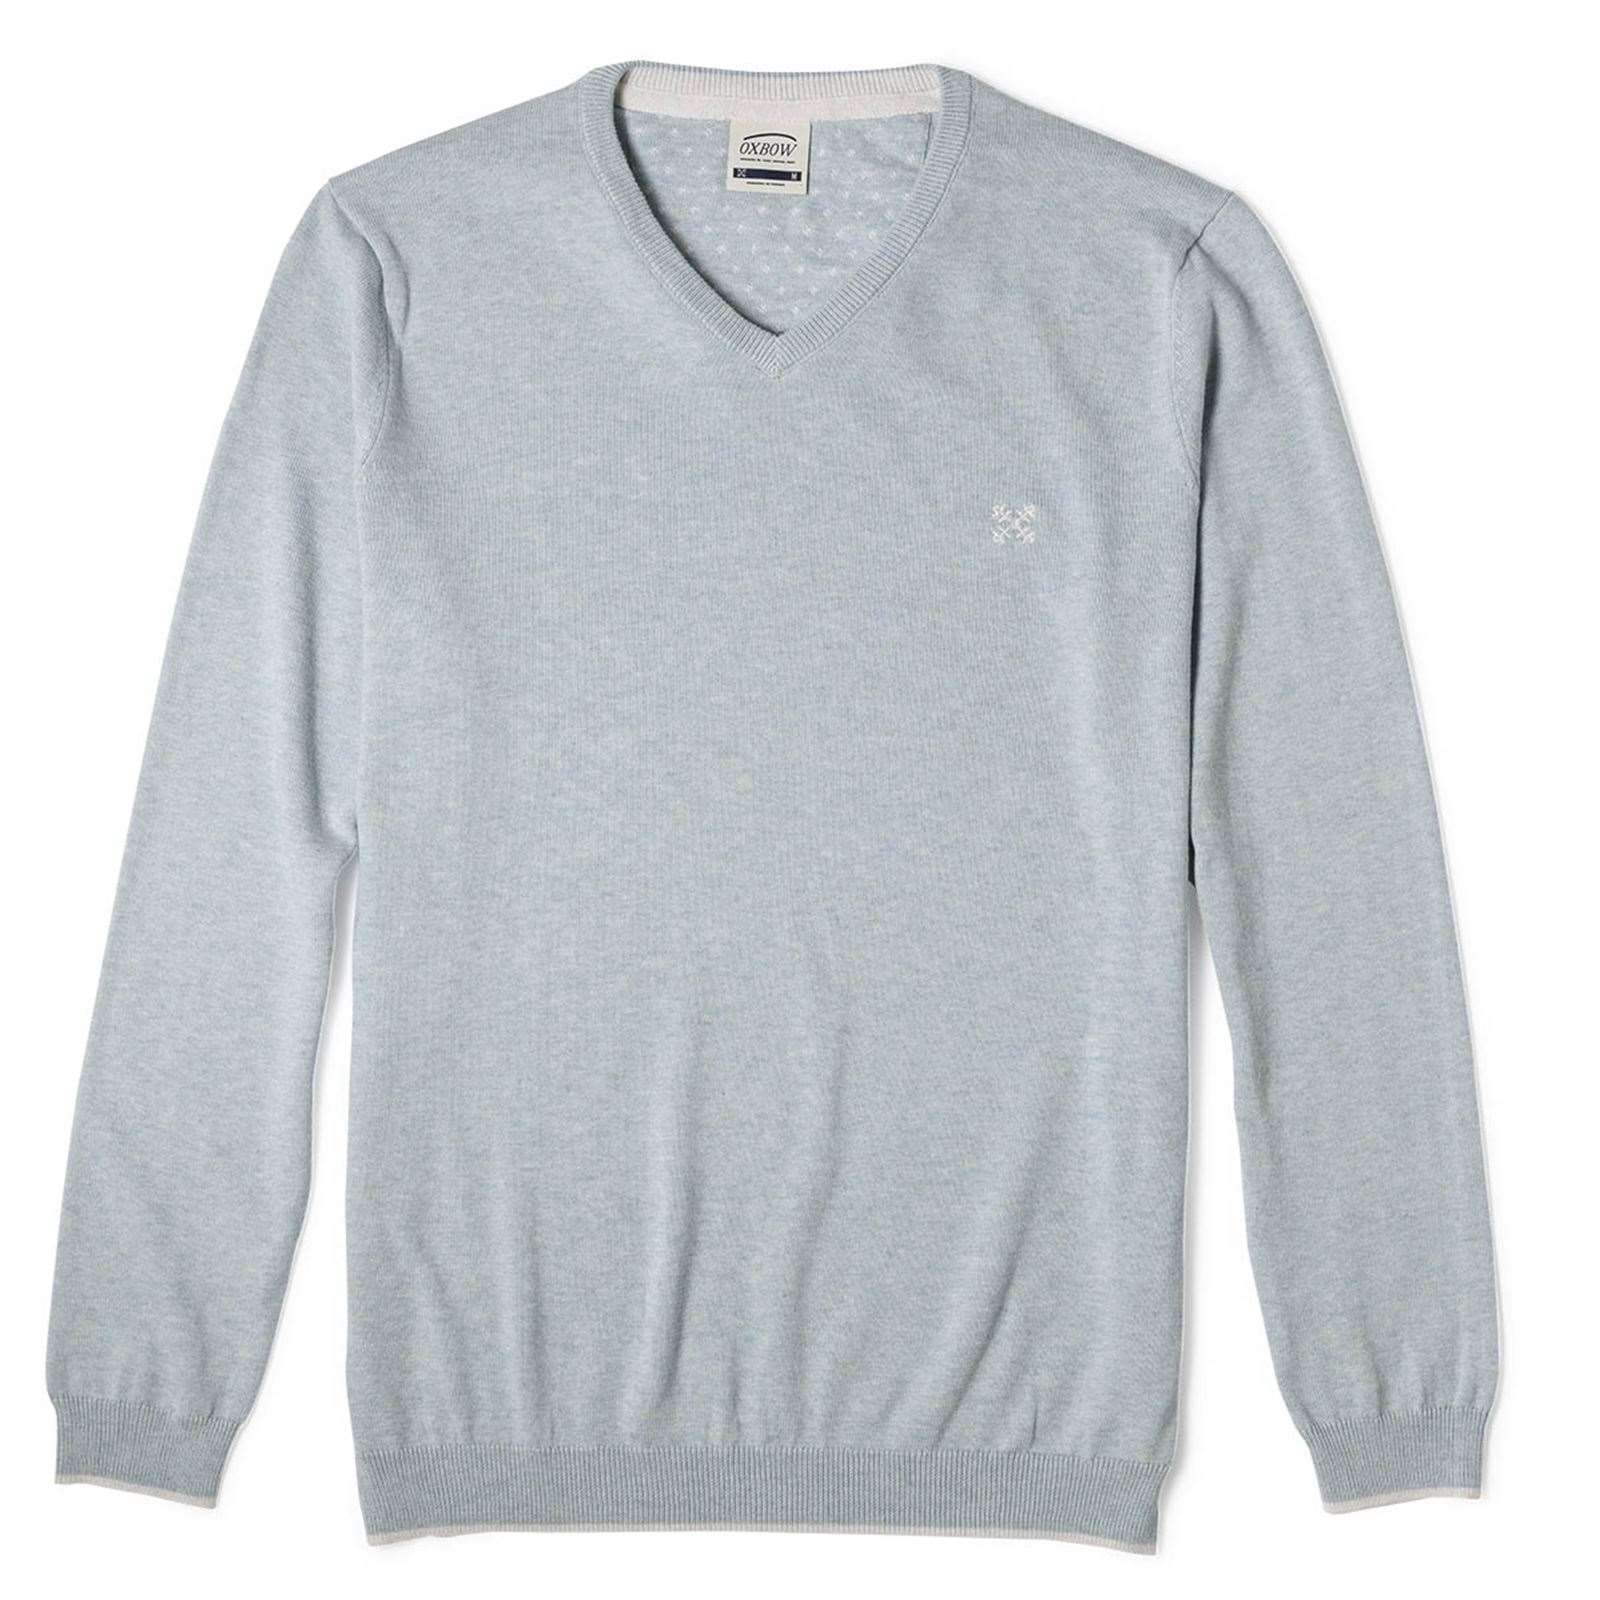 Pull Gris Clair Oxbow Pull Clair Gris Pull Clair Gris Oxbow Oxbow wtzqx